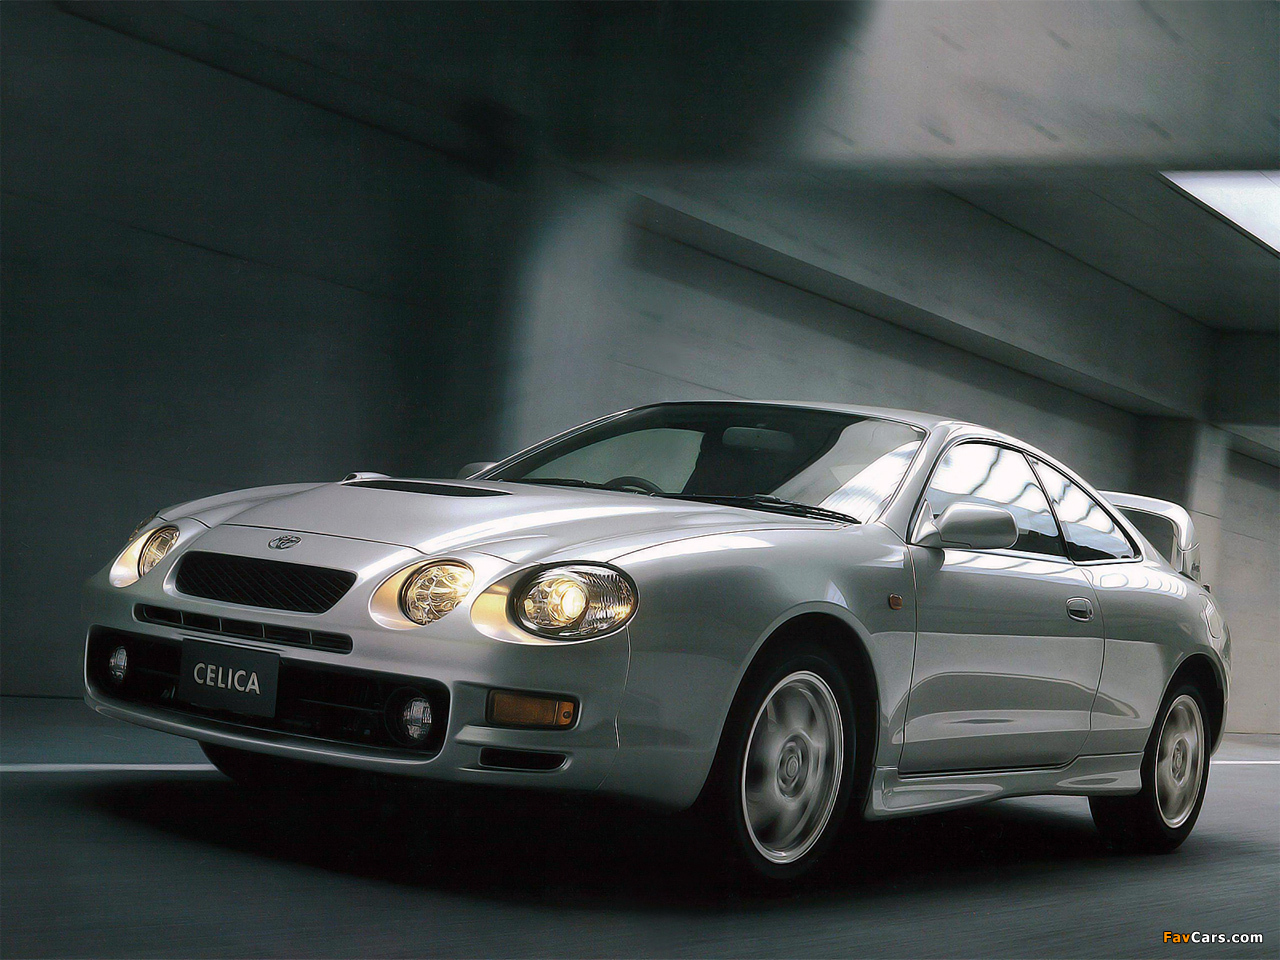 Wallpapers of Toyota Celica GT Four 199499 1280x960 1280x960